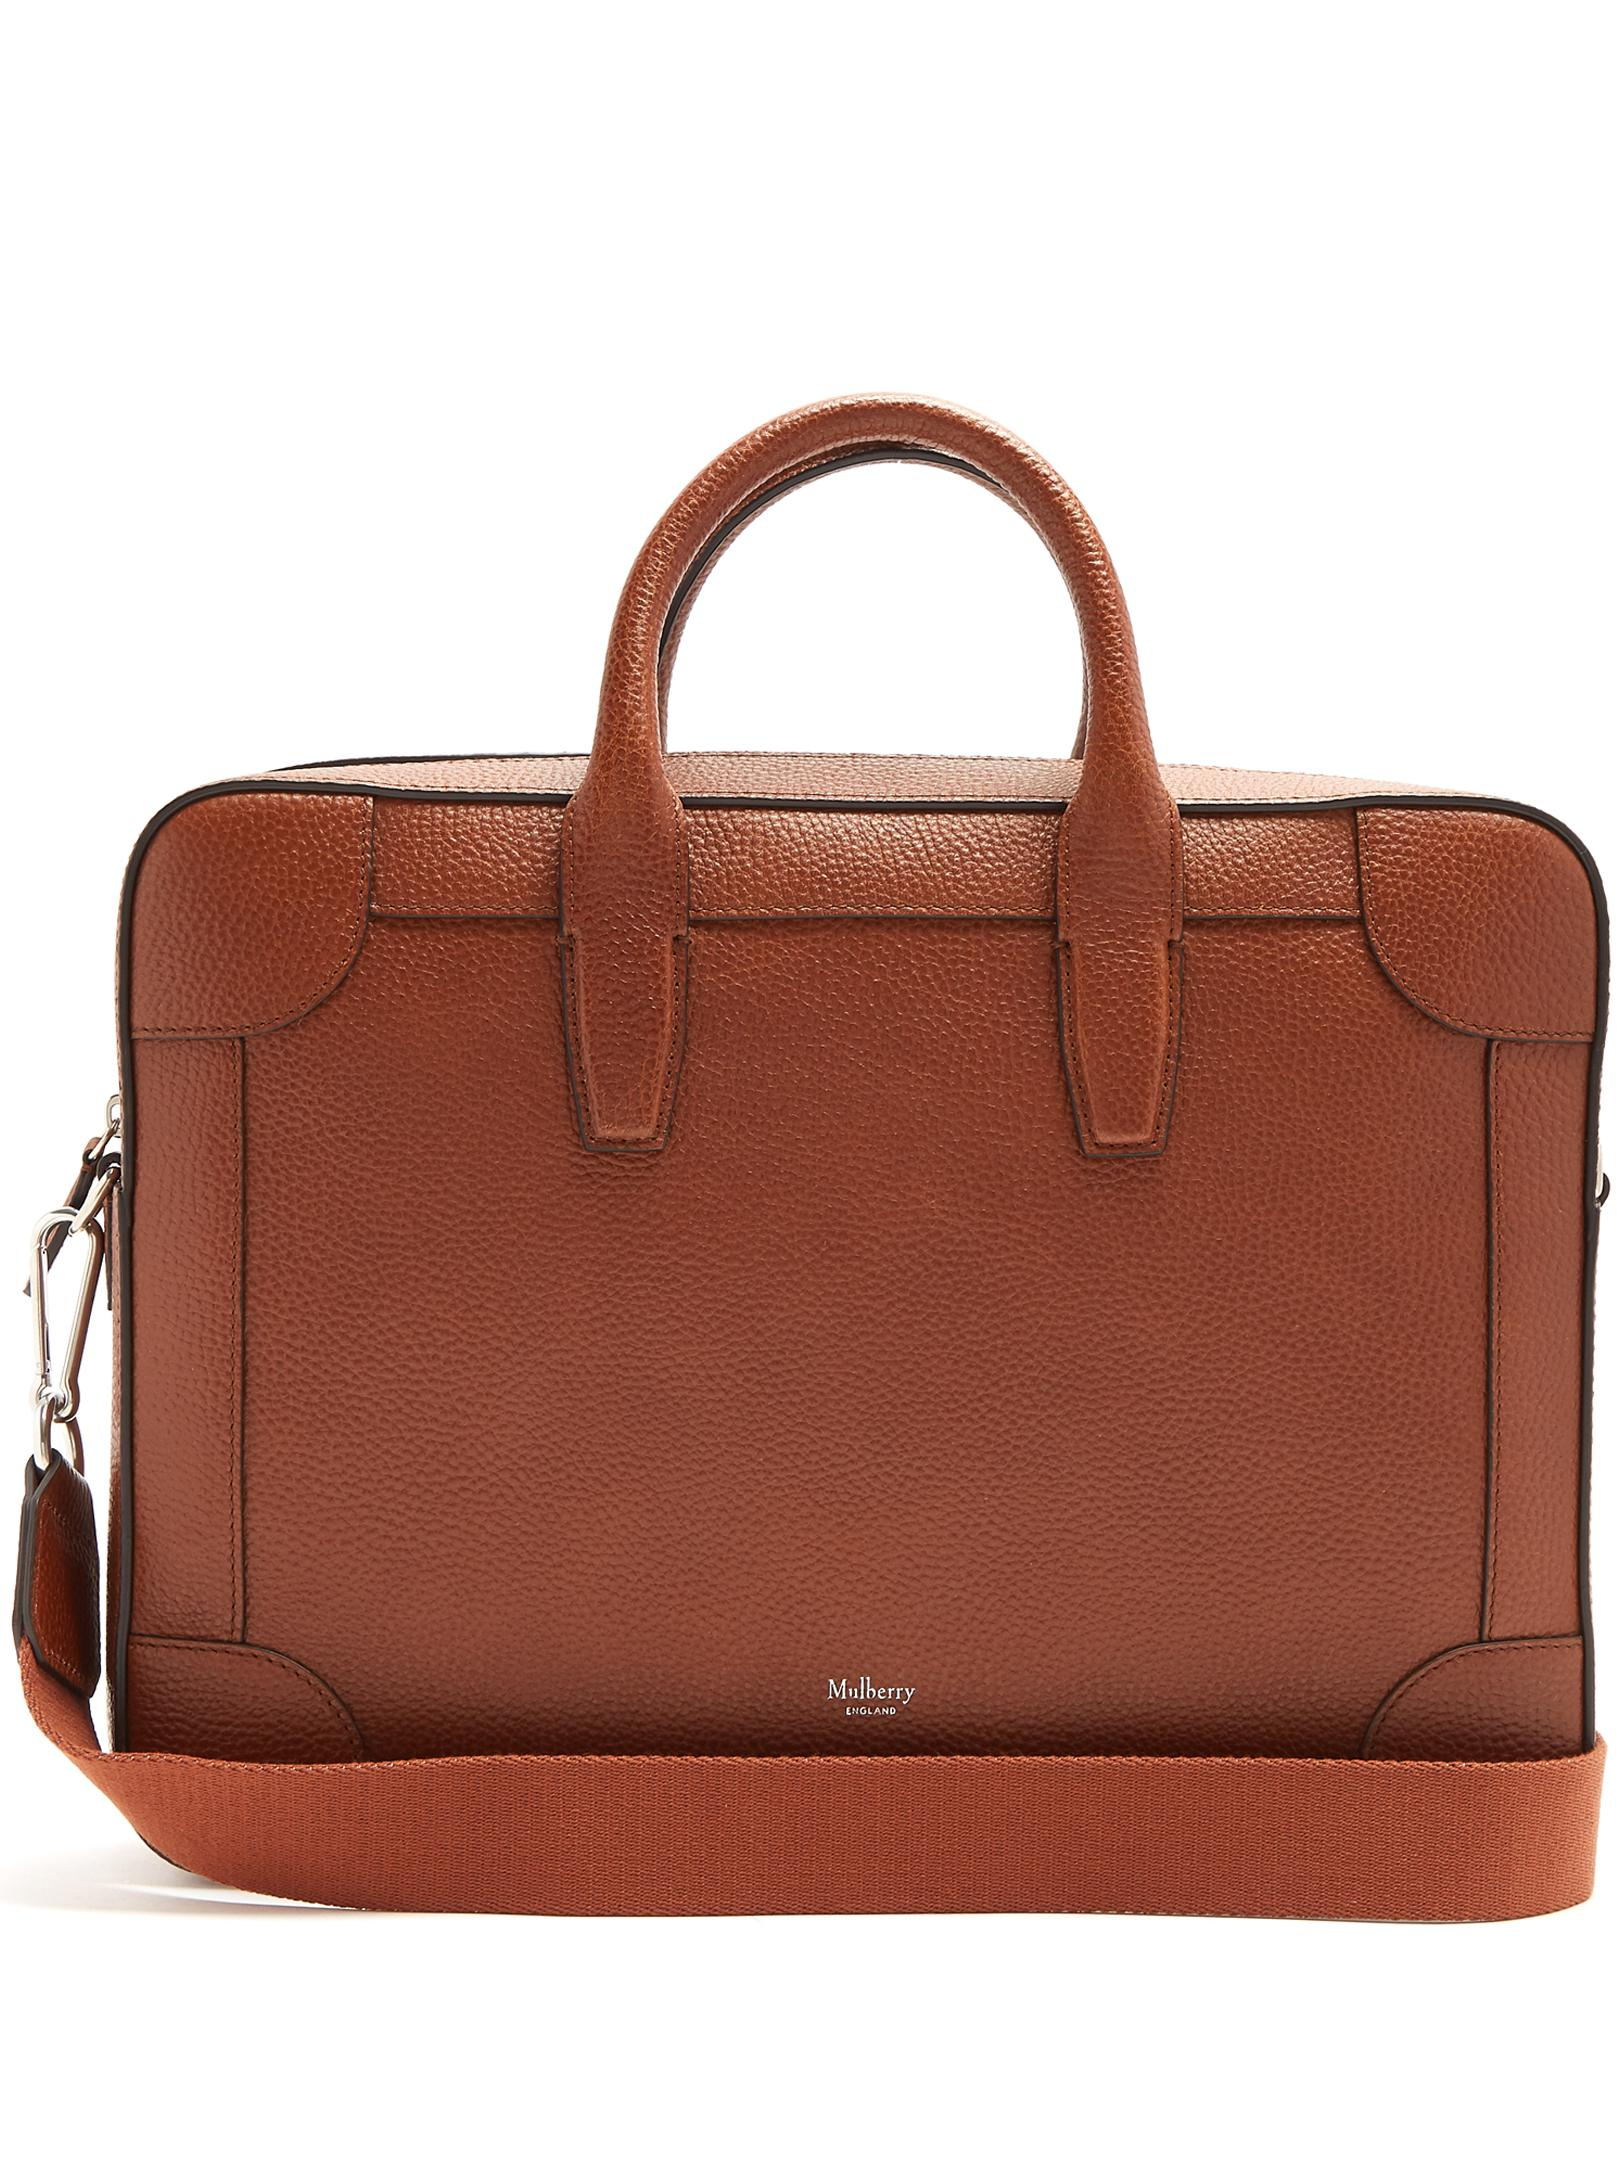 MULBERRY Belgrave Full-grain Leather Briefcase Release Dates Online Free Shipping Low Price HvM7wySF6K